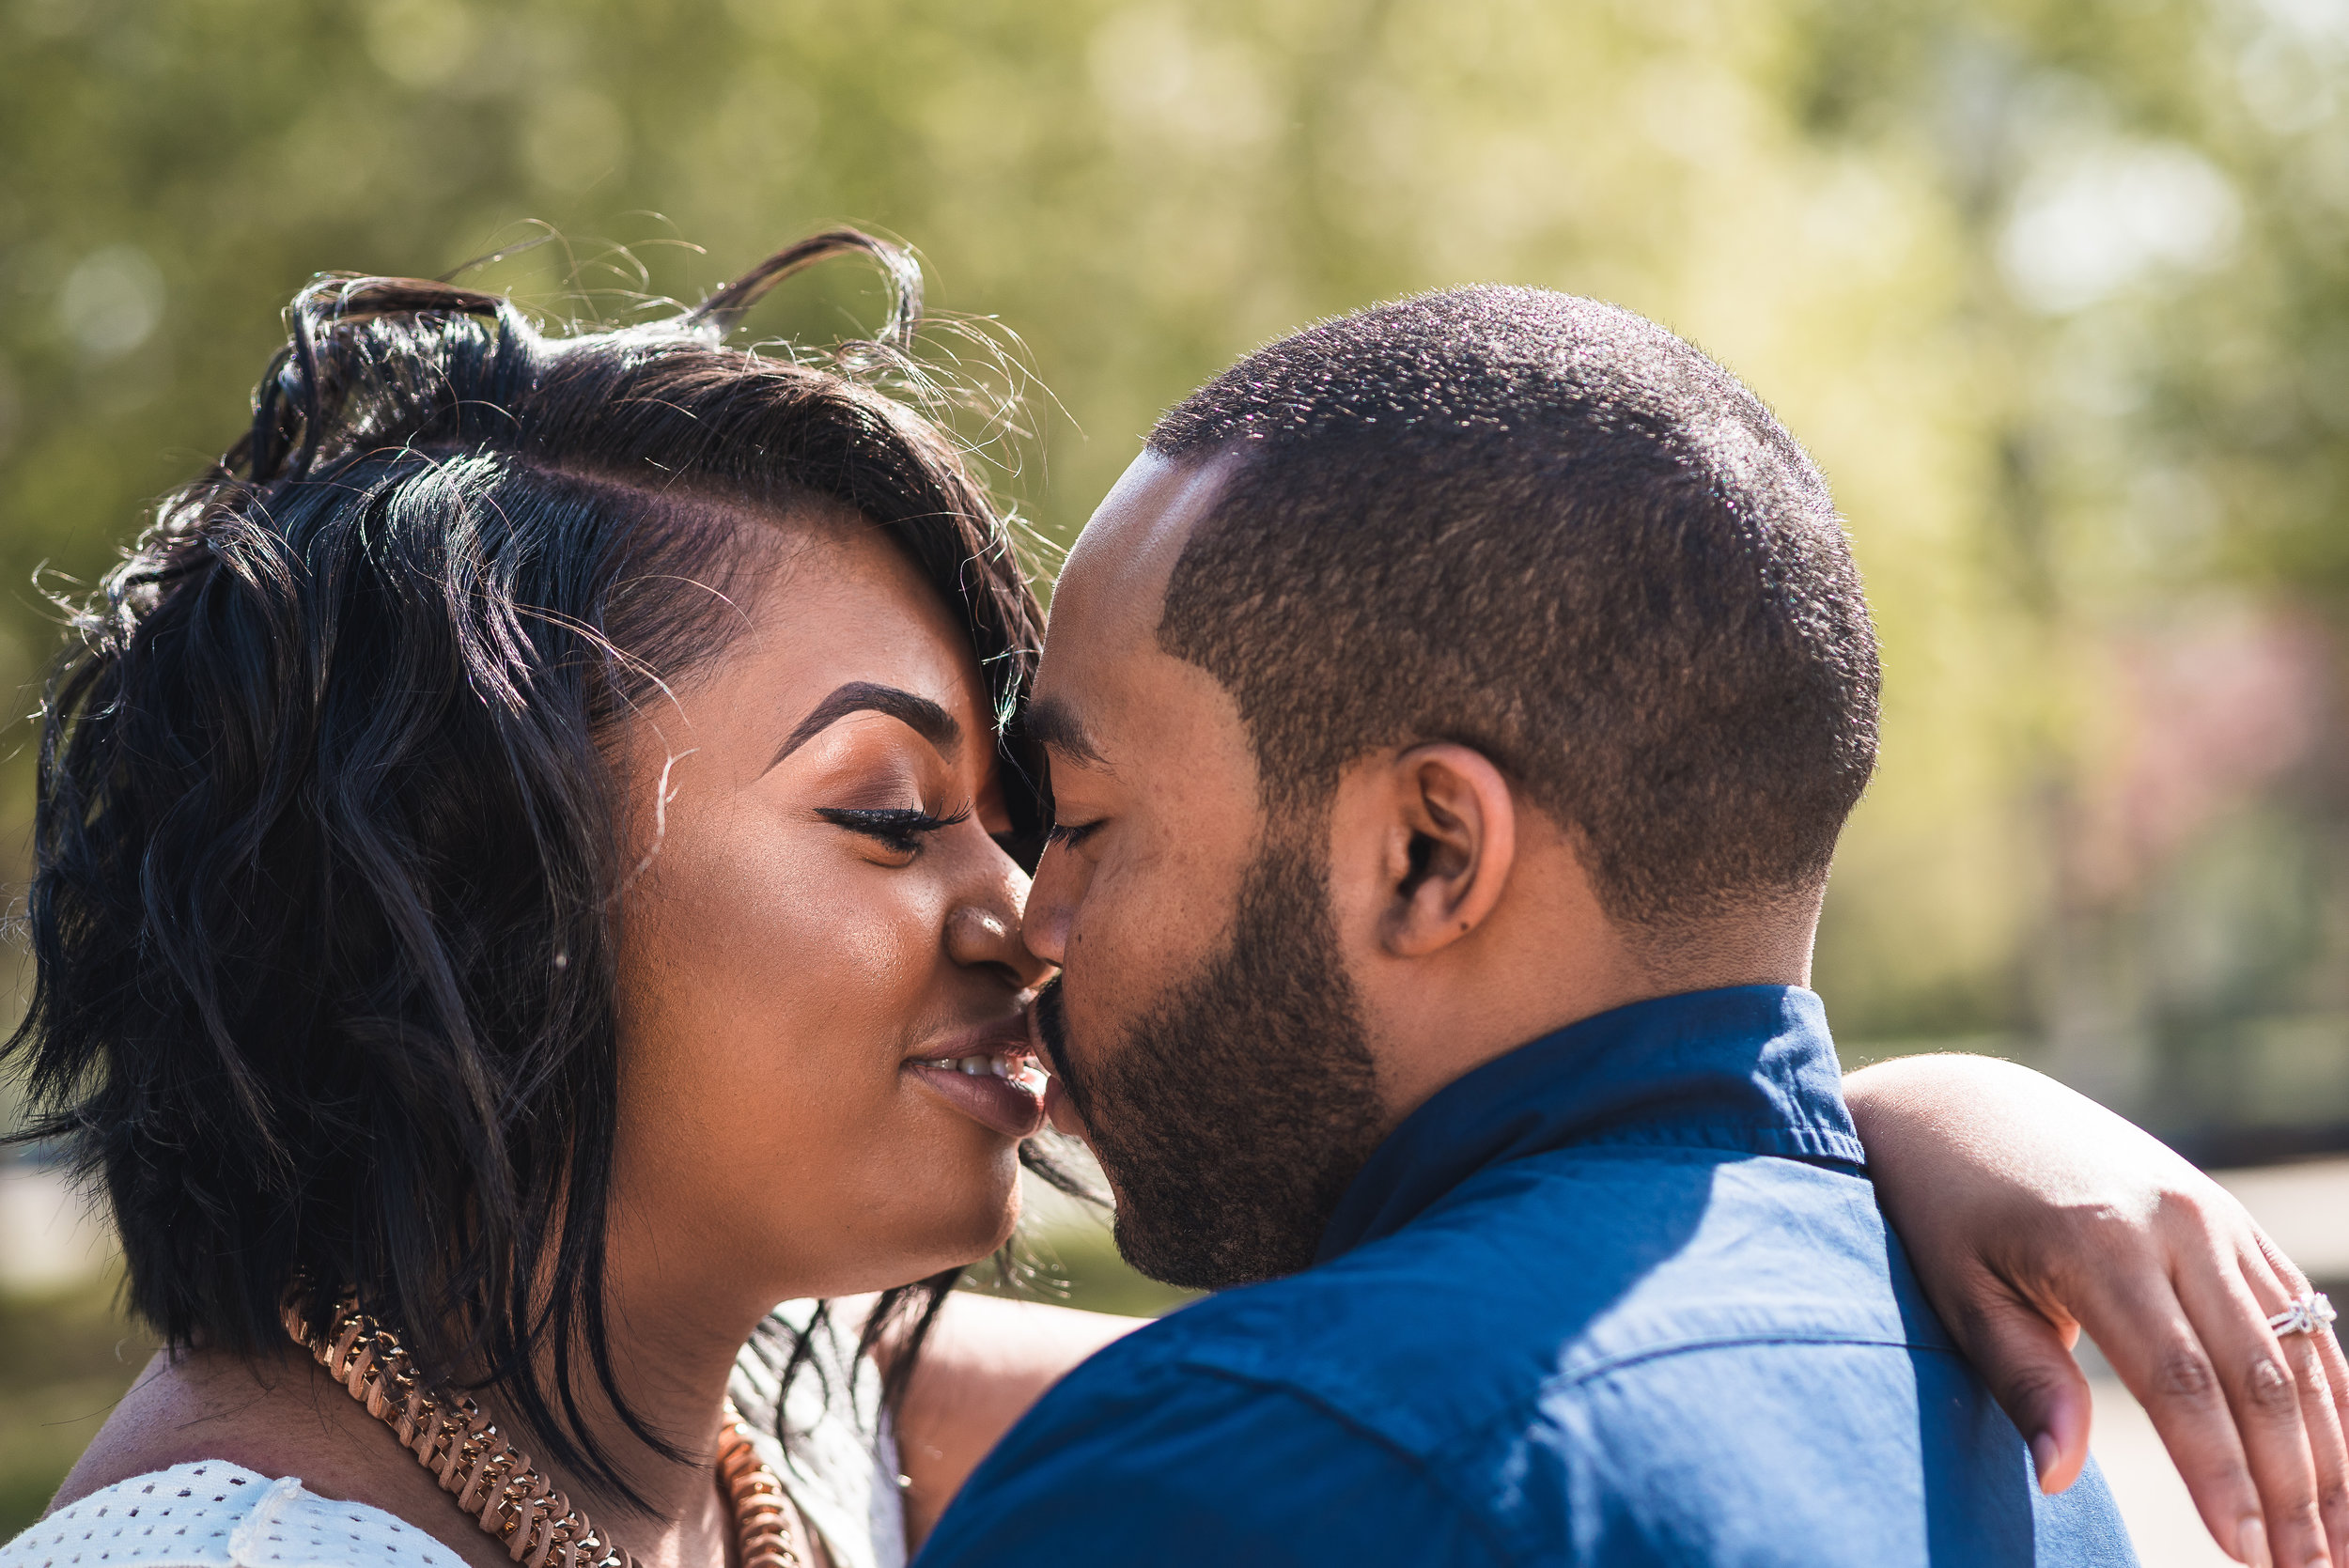 st-louis-wedding-photographer-forest-park-engagement-10.jpg